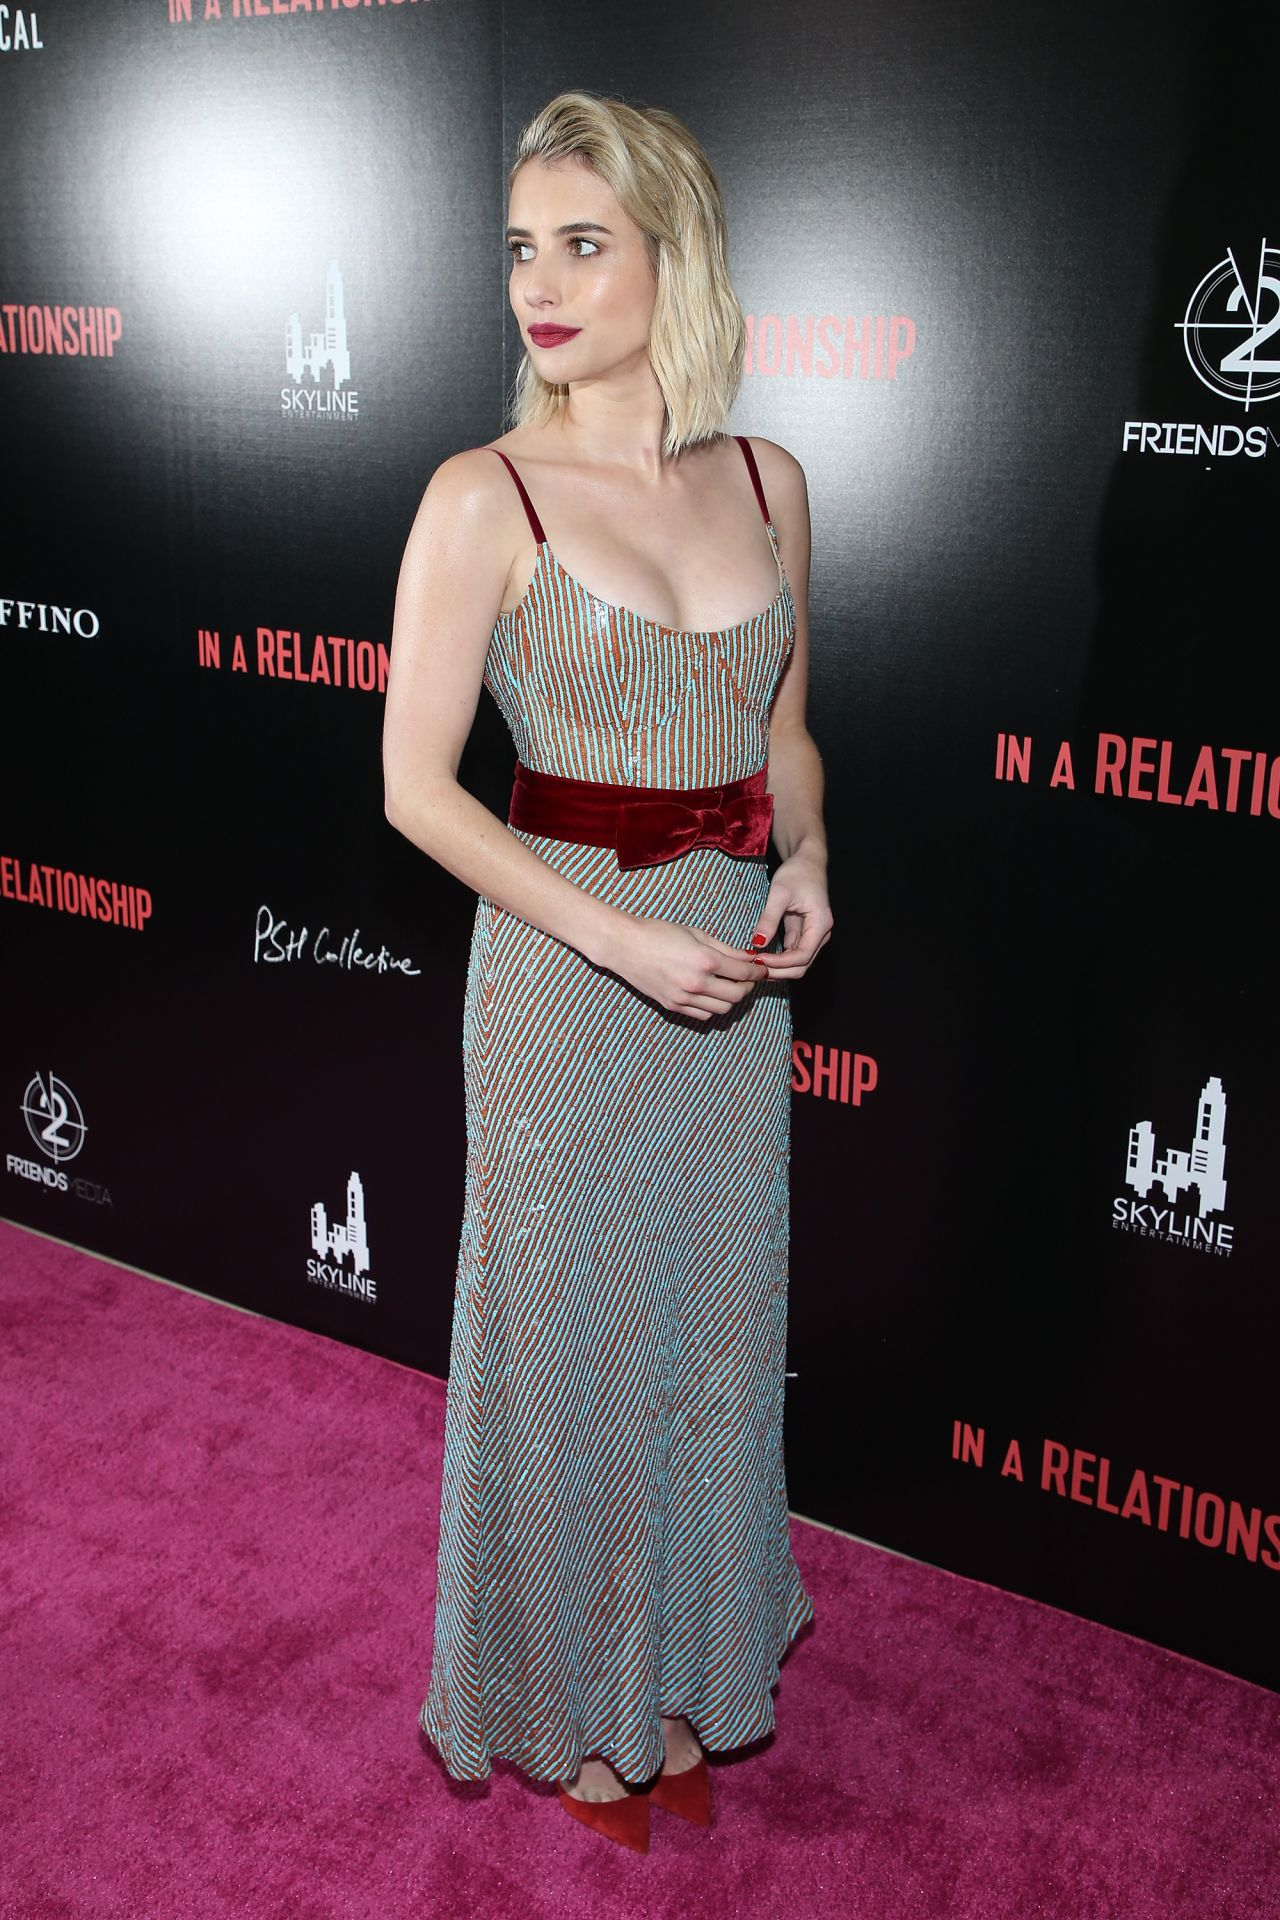 https://celebmafia.com/wp-content/uploads/2018/10/emma-roberts-in-a-relationship-premiere-in-west-hollywood-2.jpg